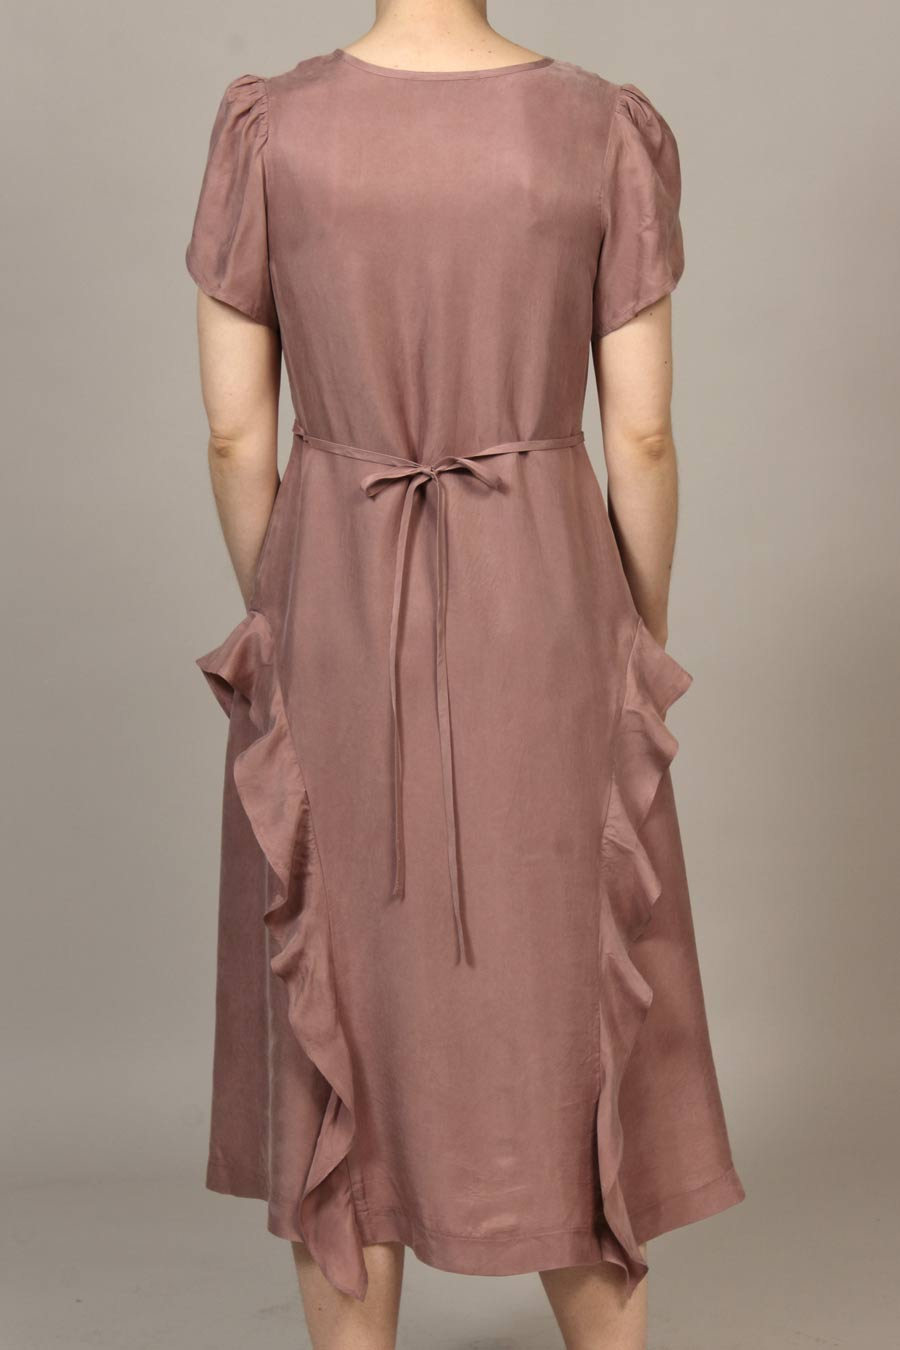 Cupro Parachute Bloomfield Dress - Dusty Pink